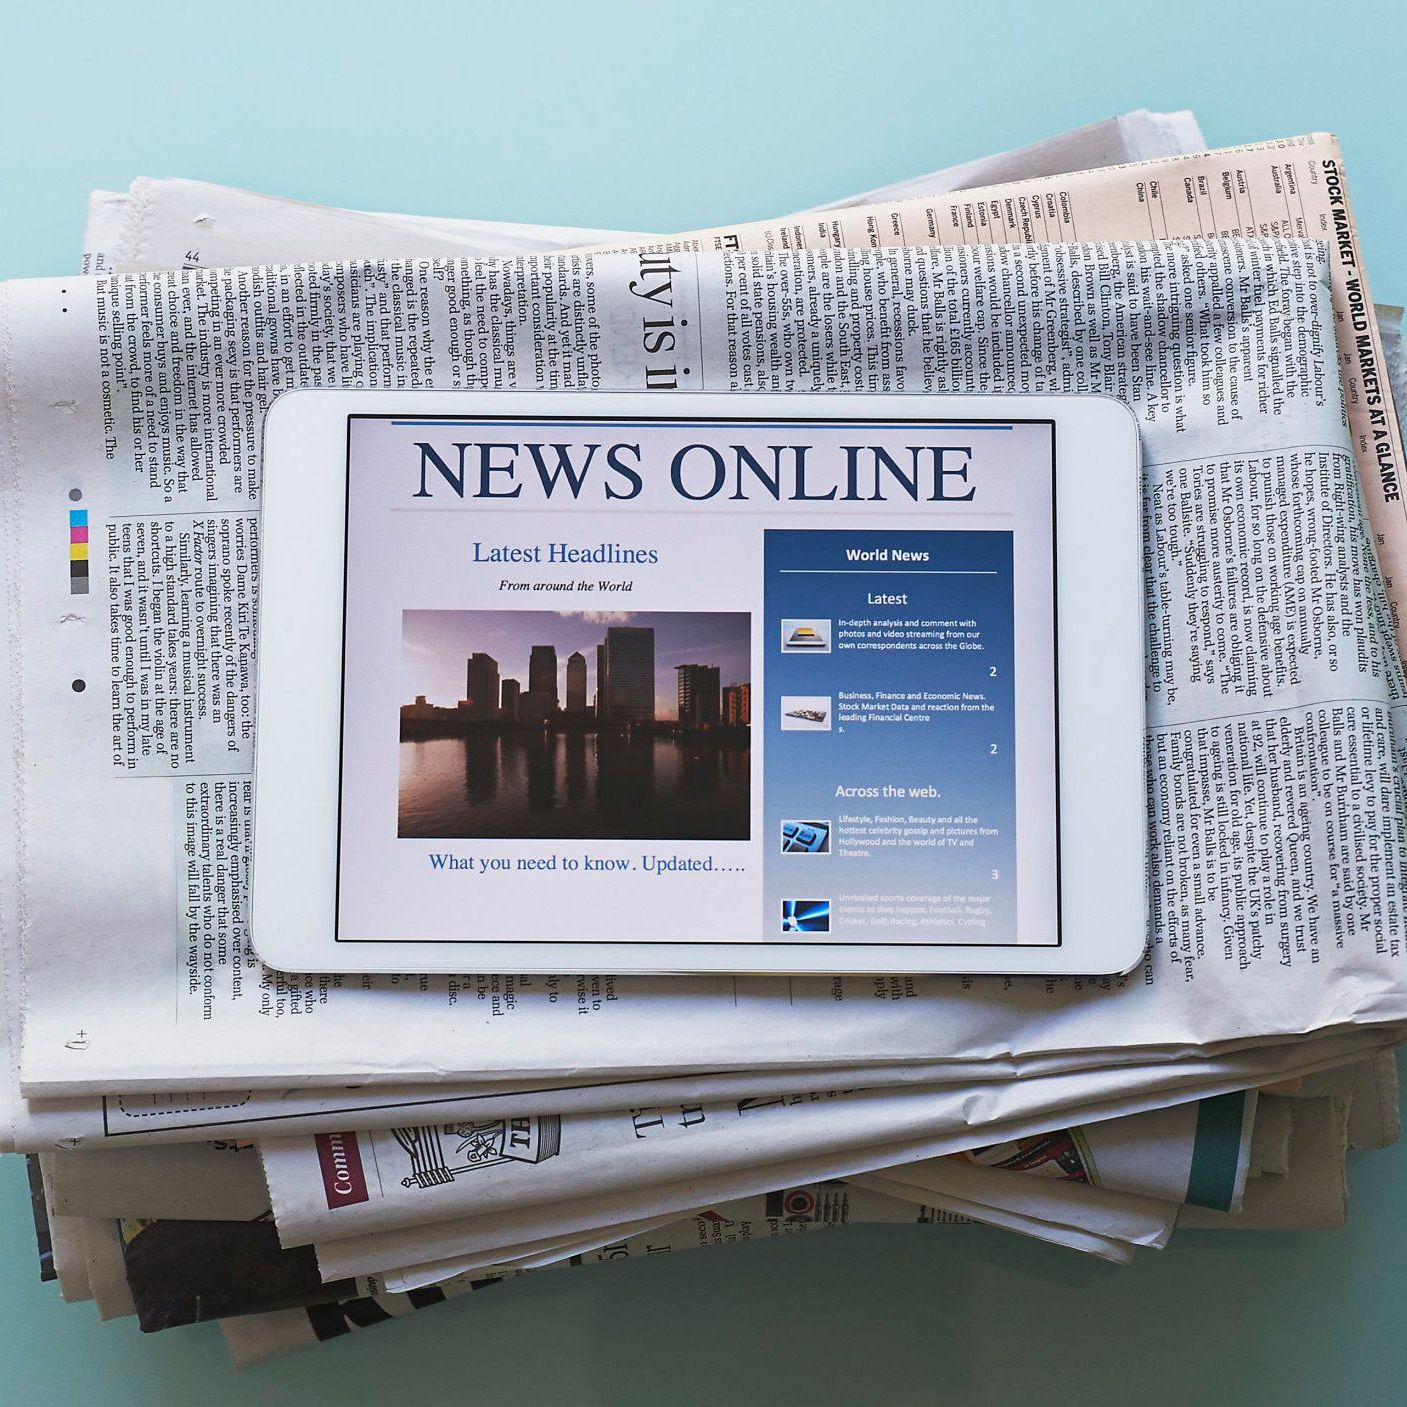 The Best Way to Read the News on Your iPad